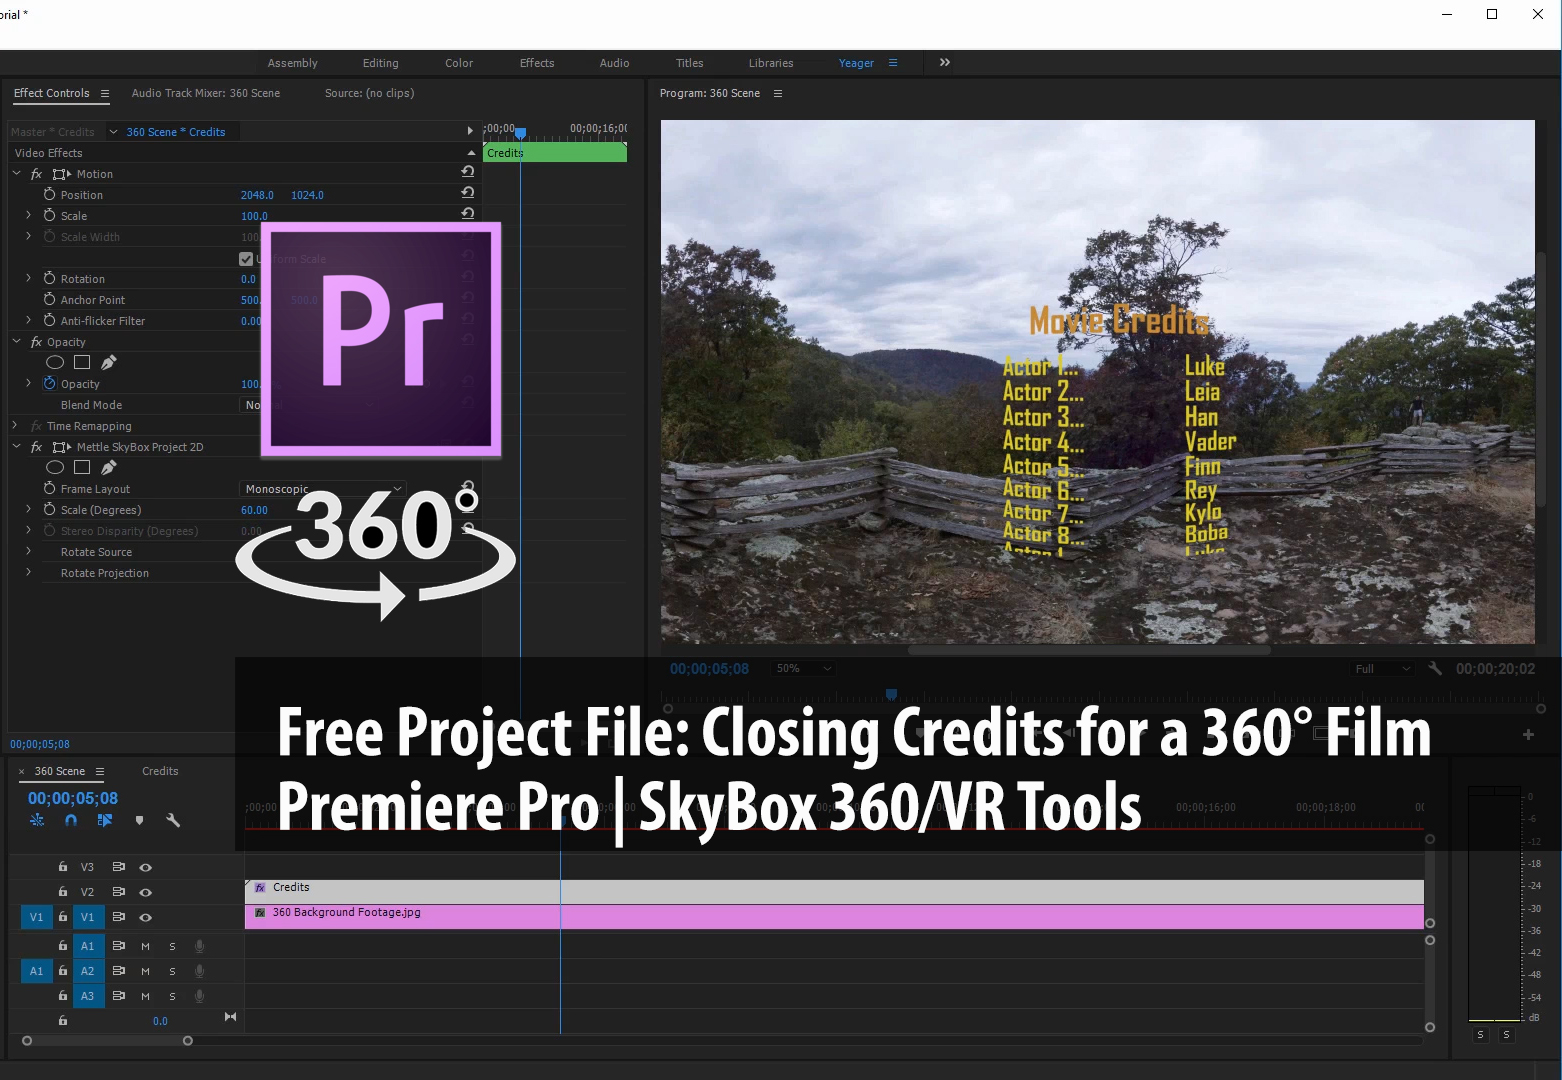 Free-Project-FIle-Premiere-Pro-Rolling-End-Credits